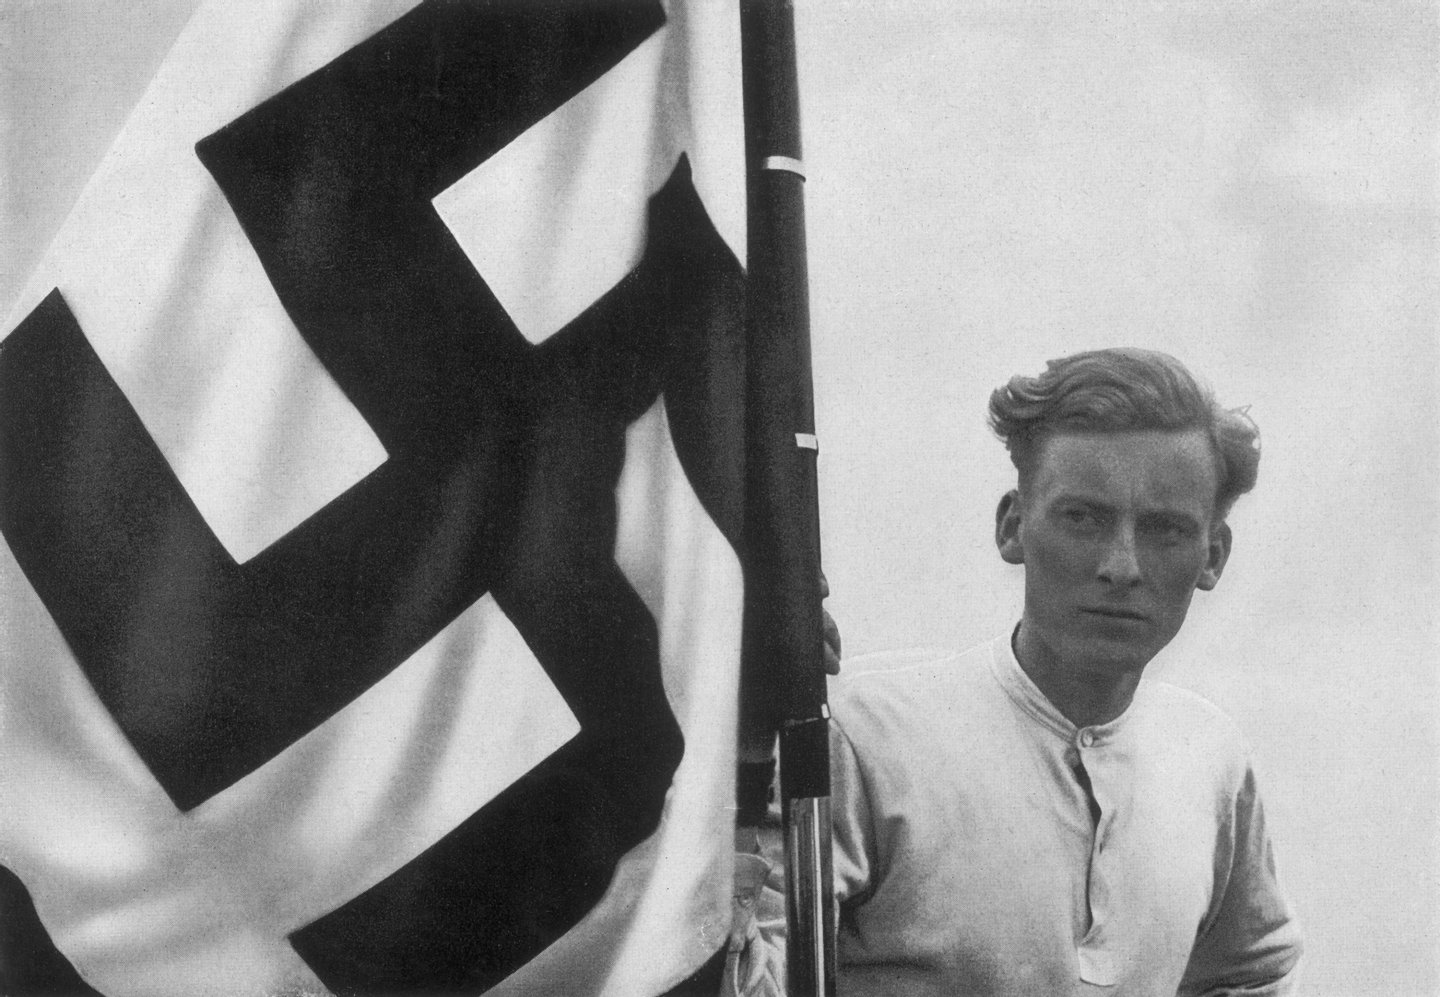 circa 1935:  A member of the Hitler Youth with a swastika flag at a Nazi rally in Germany.  Original Publication: From a series of collectable images published in Germany during the Nazi period, entitled 'Deutschland Erwacht' (Germany Awakes).  (Photo by Hulton Archive/Getty Images)